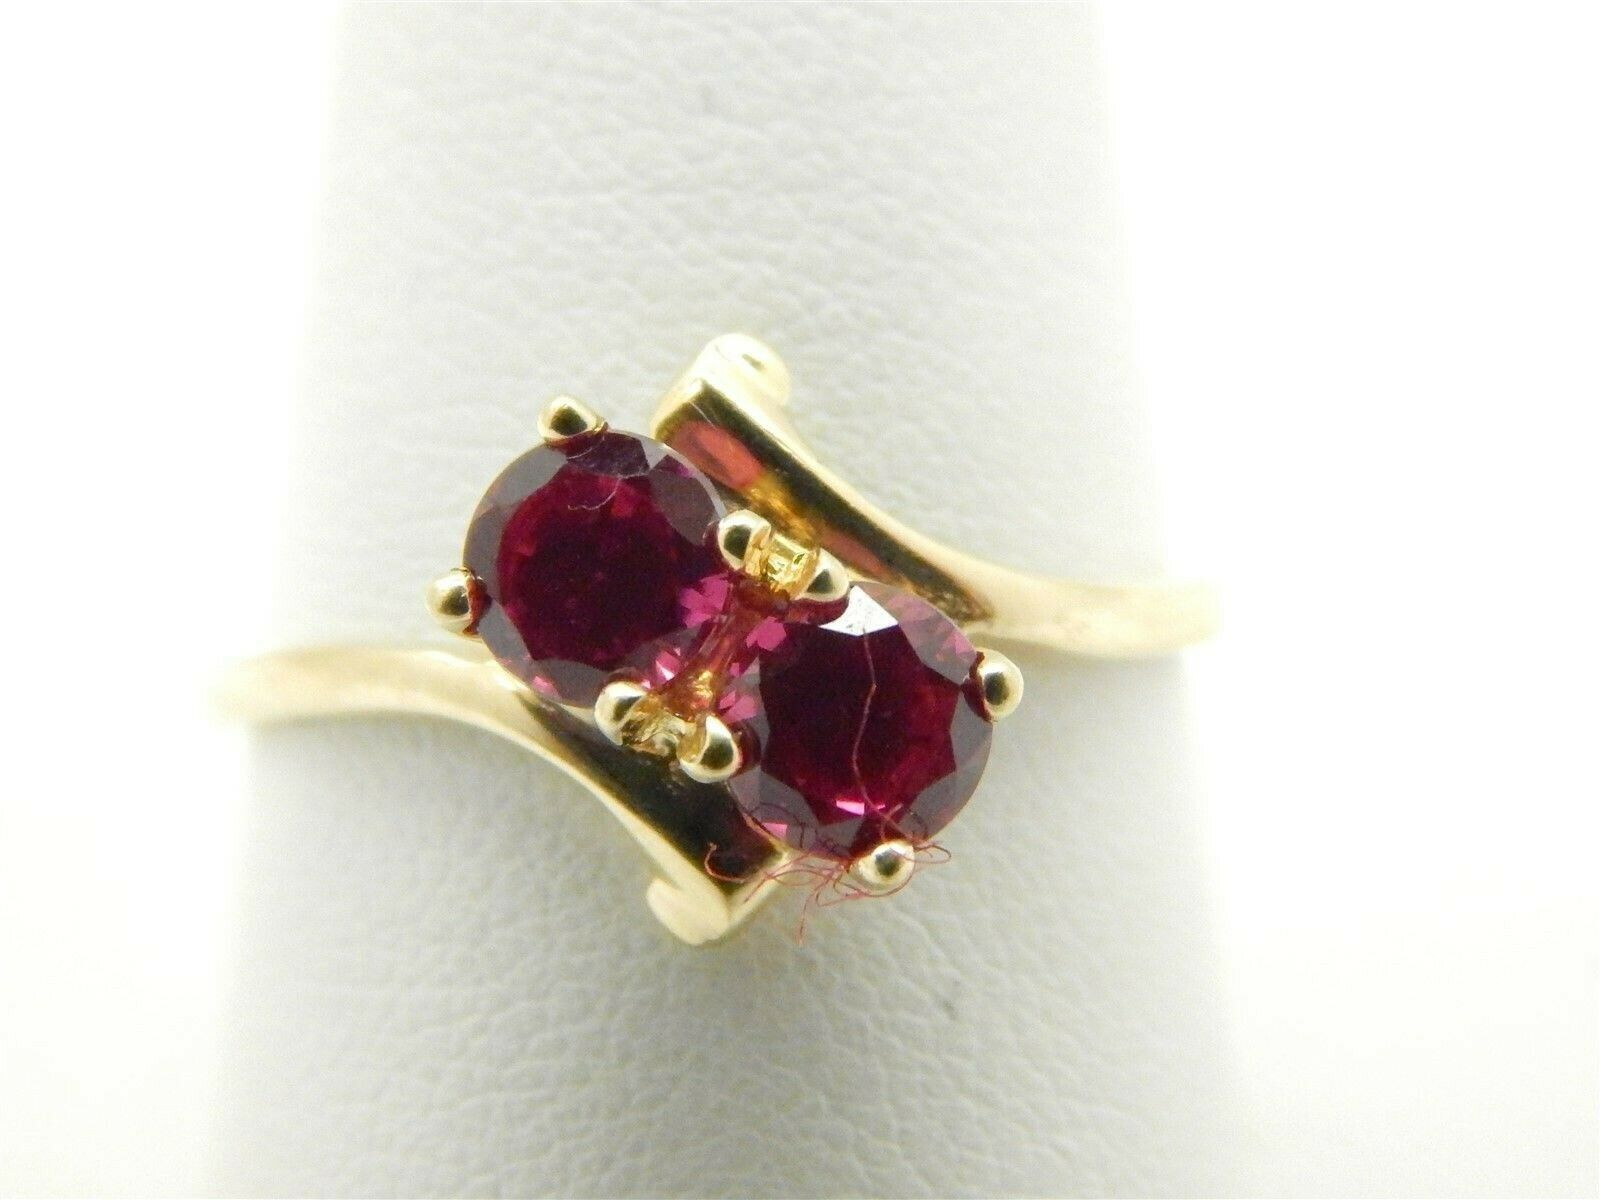 Beautiful 10K gold 1 TCW Synthetic Ruby Ring Size 9.75